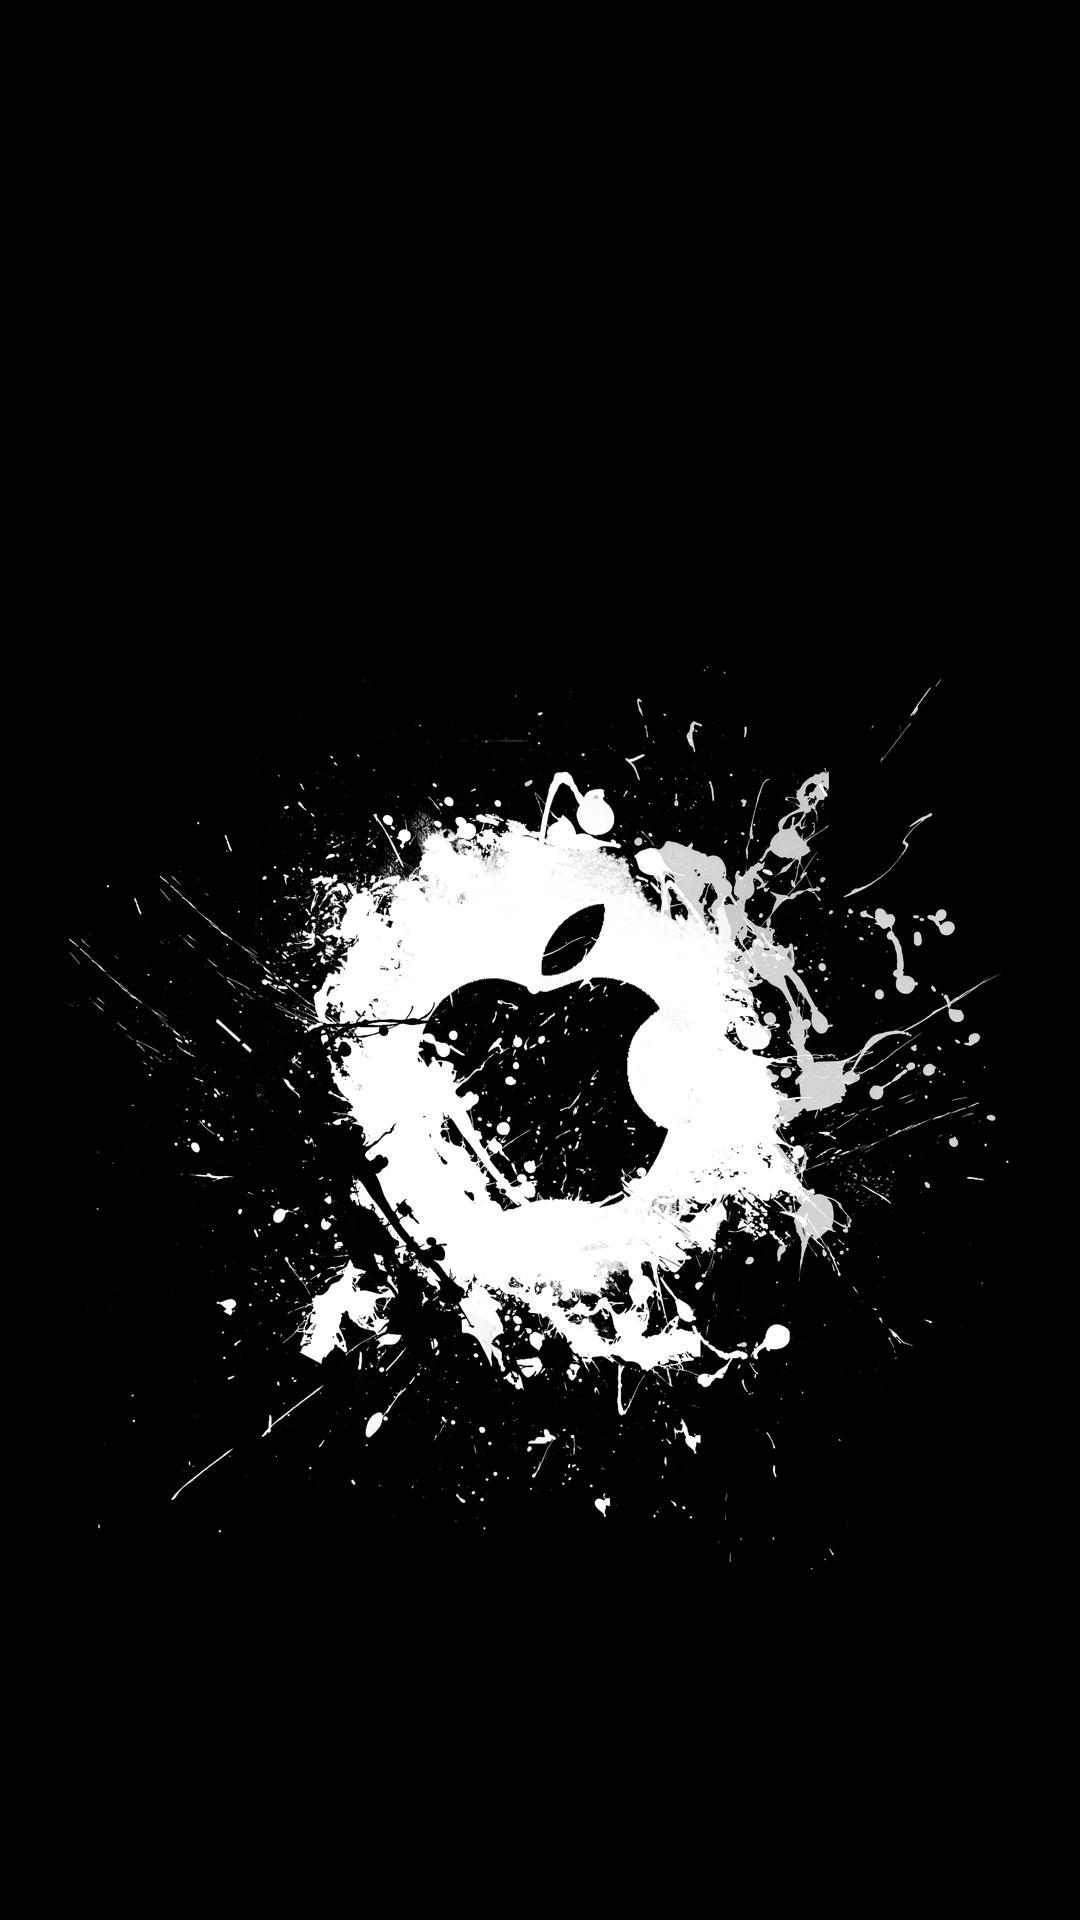 White Iphone 7 Plus Wallpapers Cool Apple Logo Backgrounds 73397 Hd Wallpaper Backgrounds Download